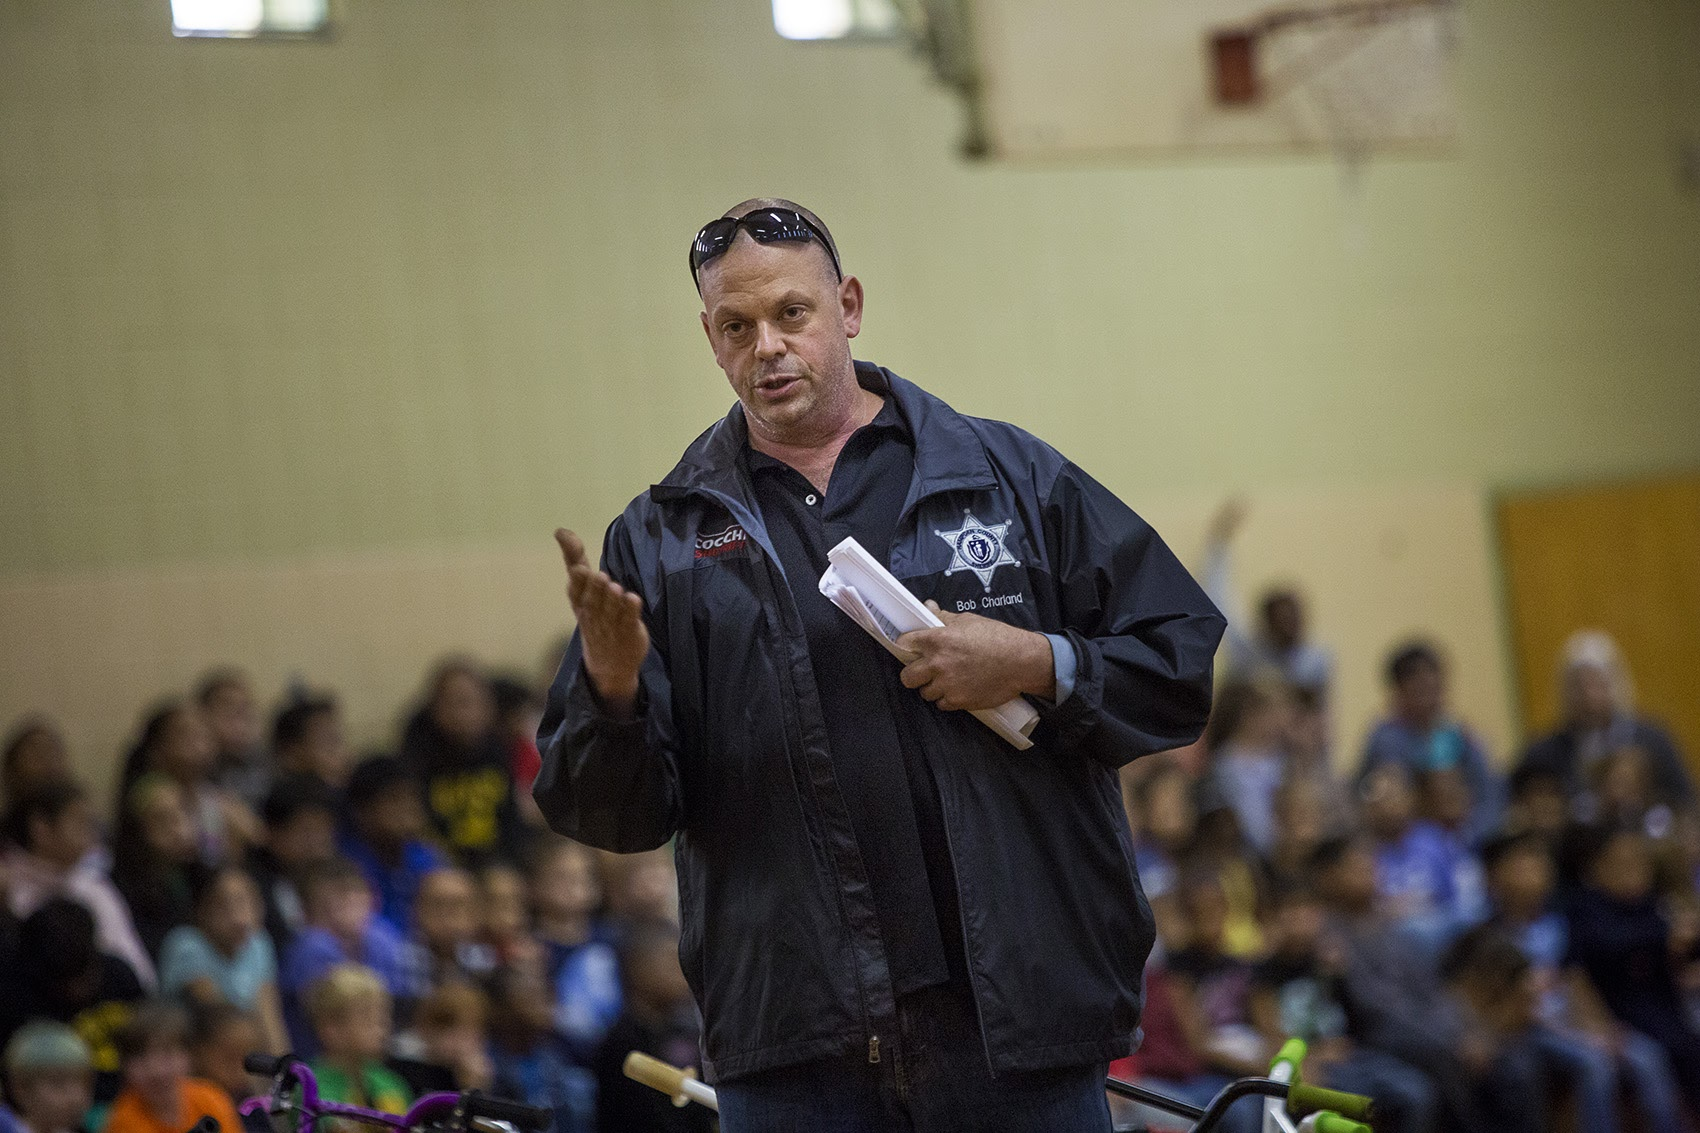 Bob Charland speaks to students at the Stefanik School in Chicopee about bicycle safety. (Jesse Costa/WBUR)